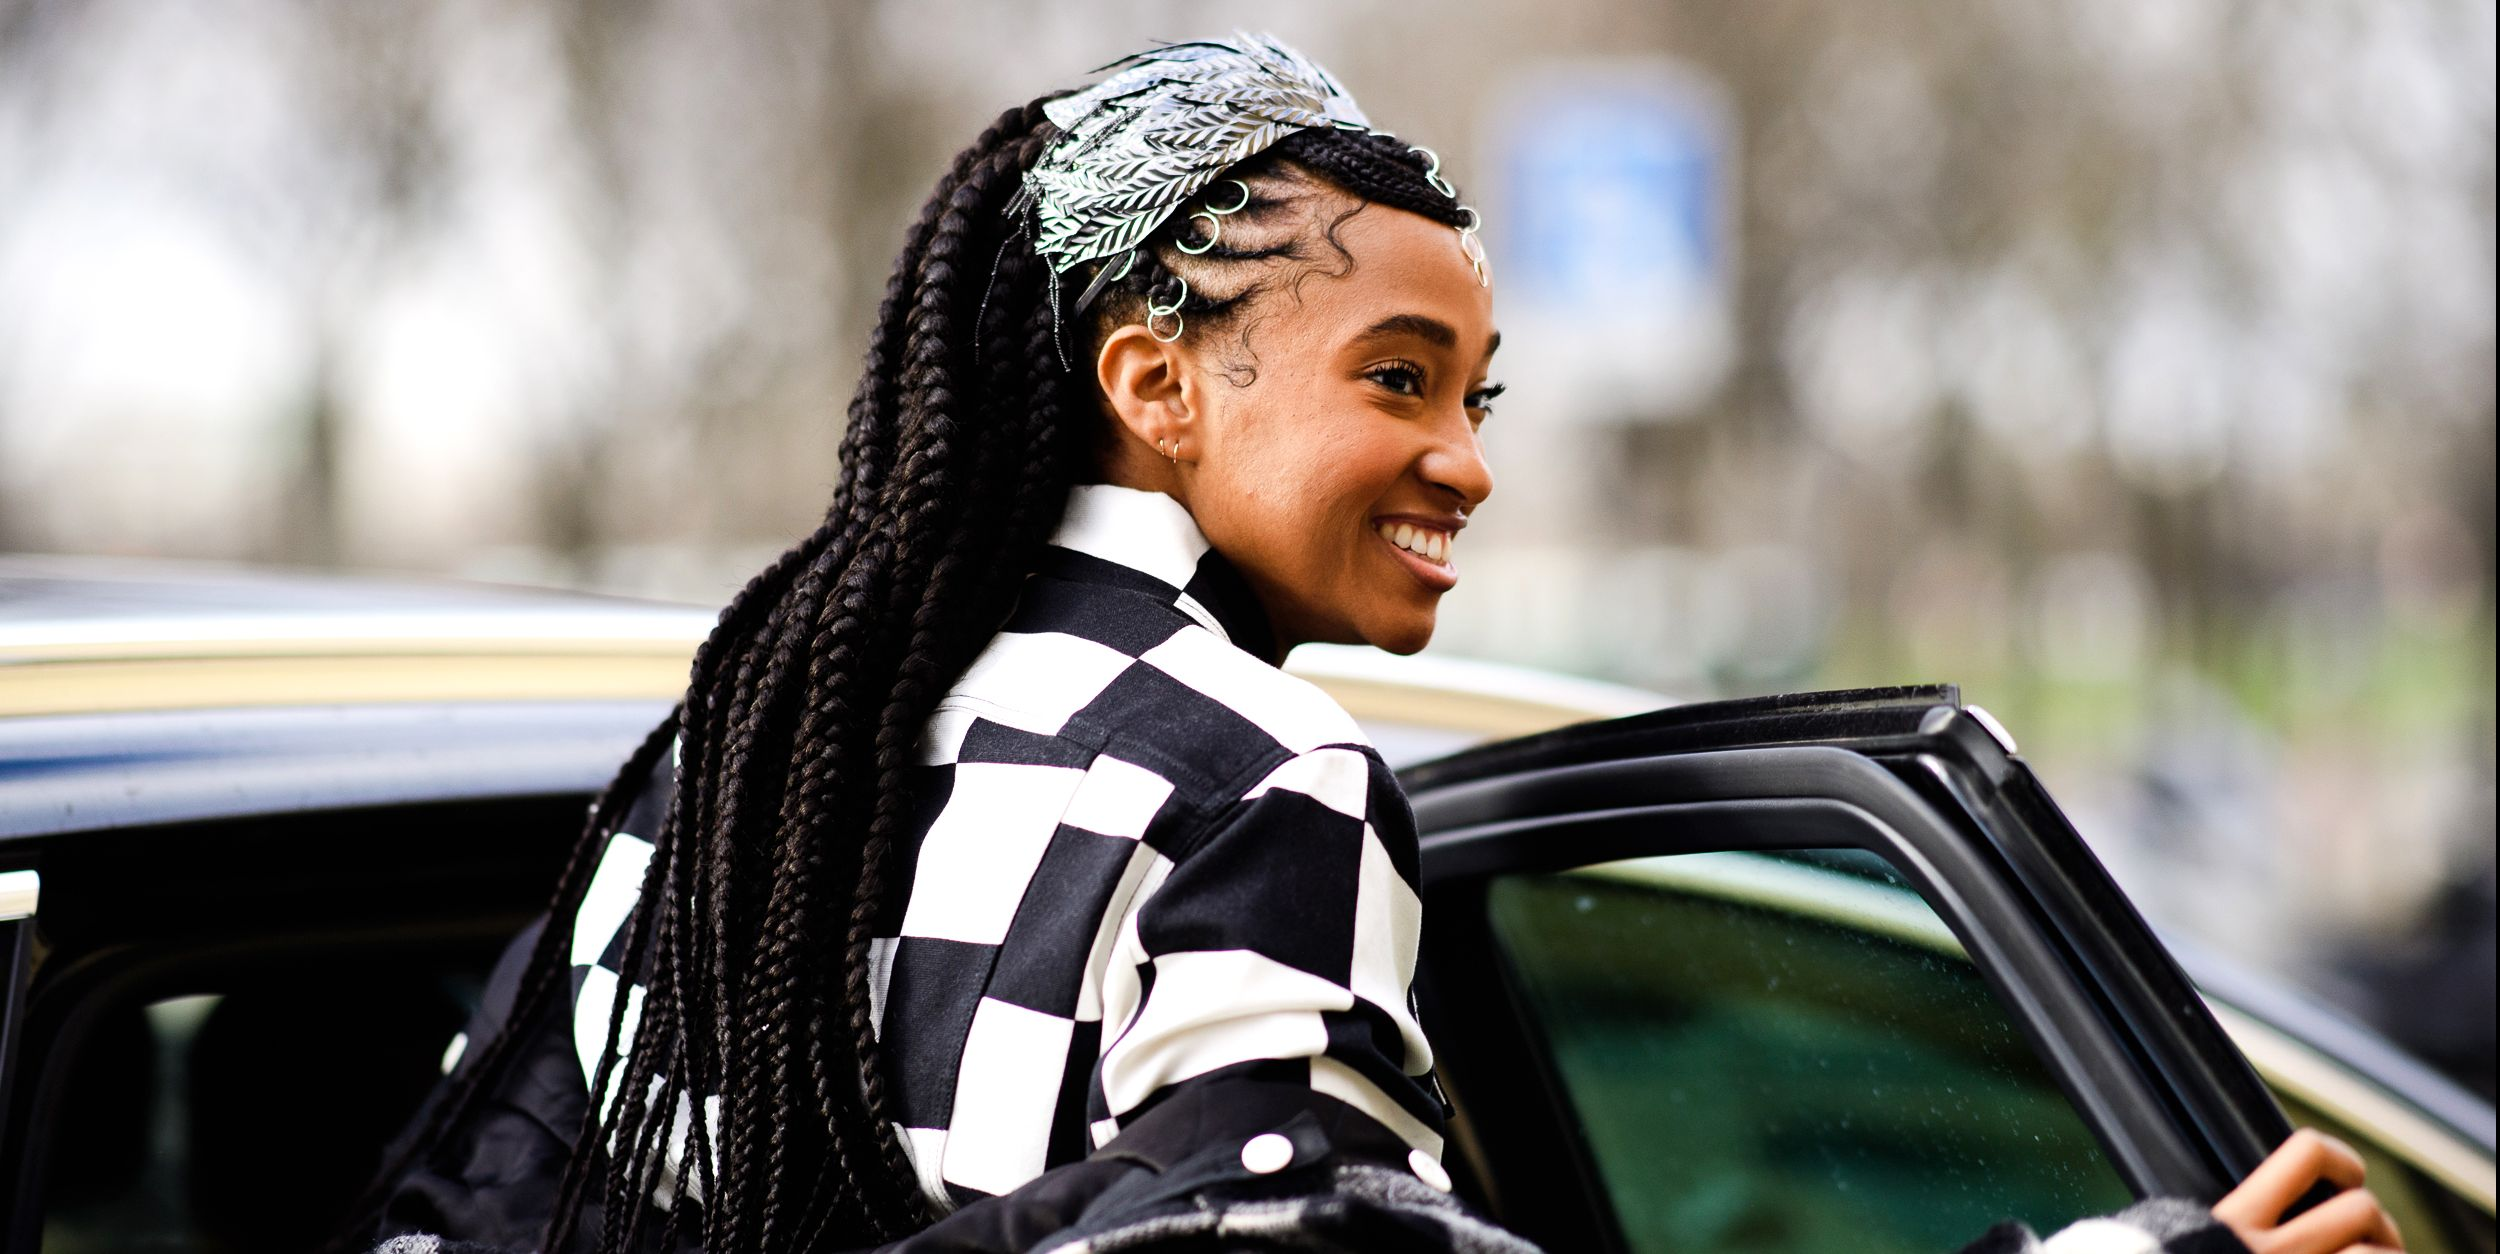 7 Hair Ring Ideas to Dress Up Braids, Buns, and Everything in Between